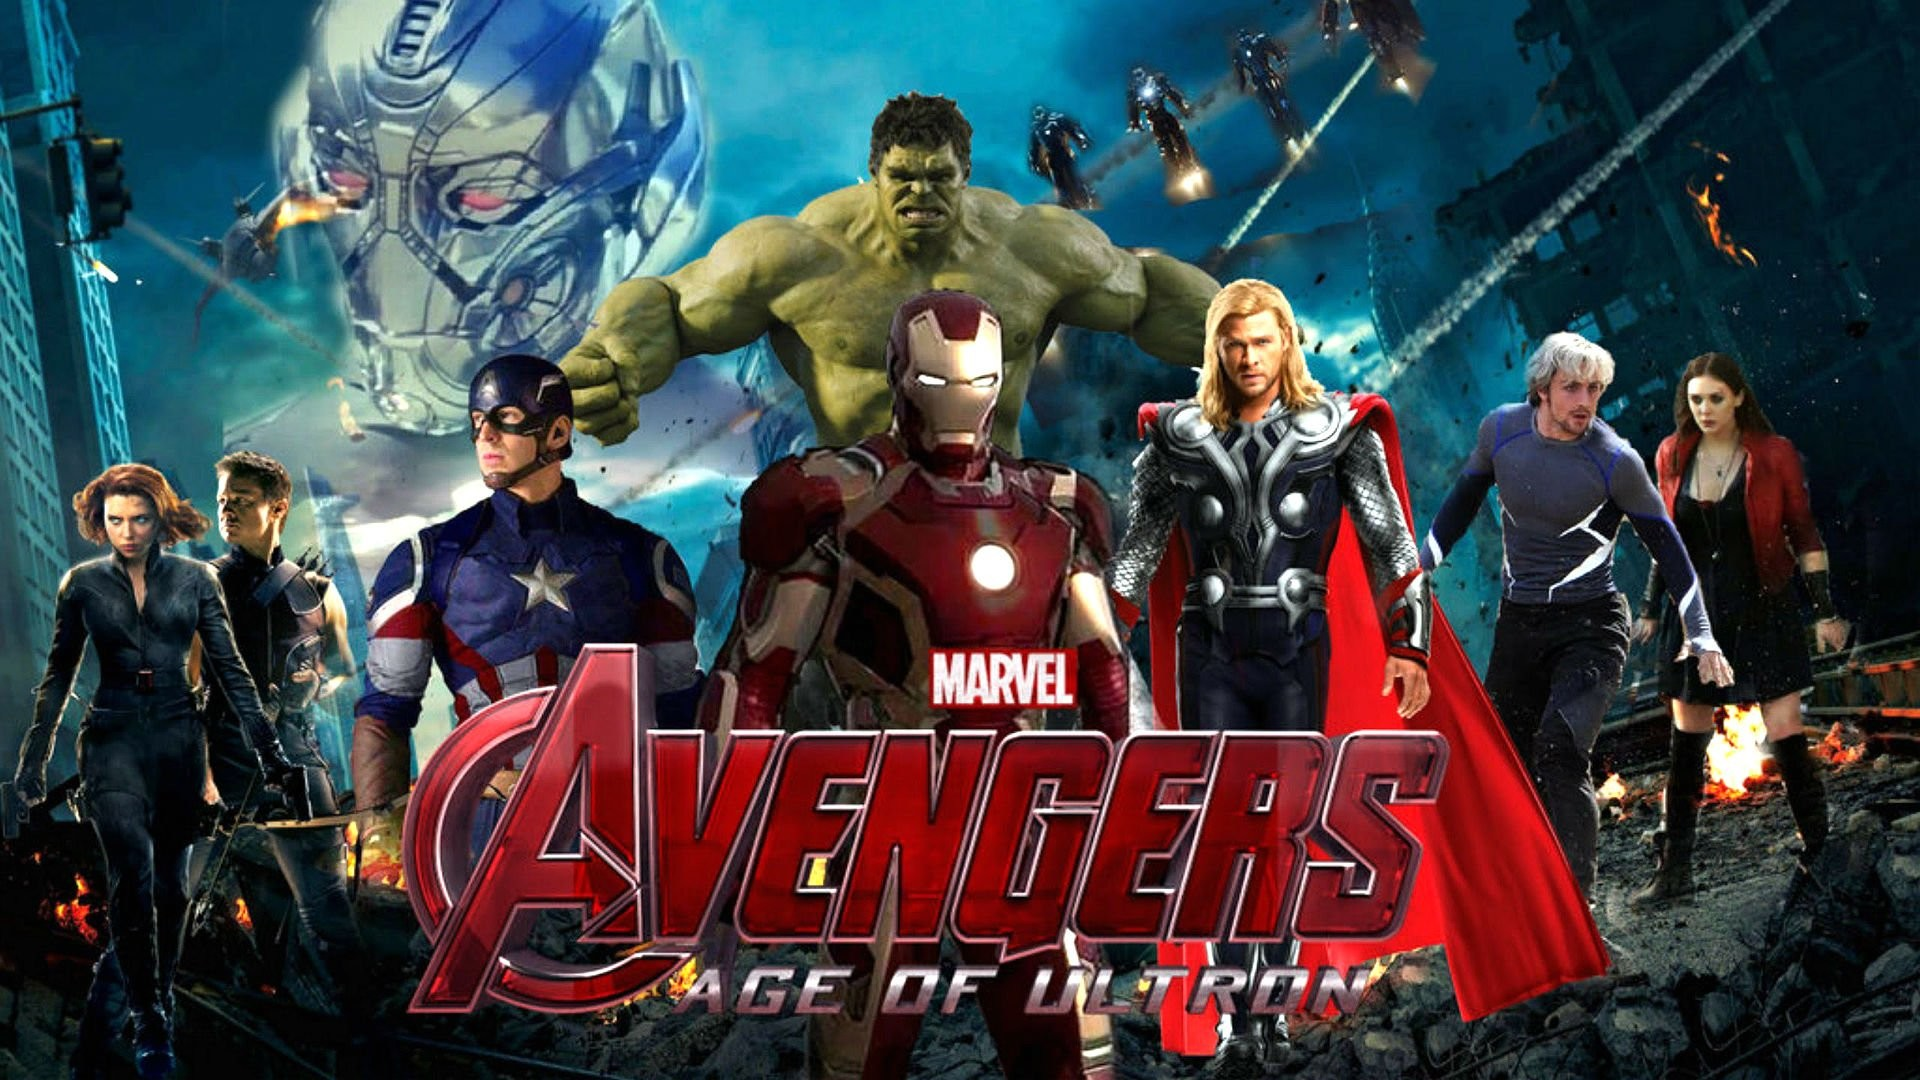 ultron 2015 hd wallpapers 7 avengers age of ultron 2015 hd wallpapers .